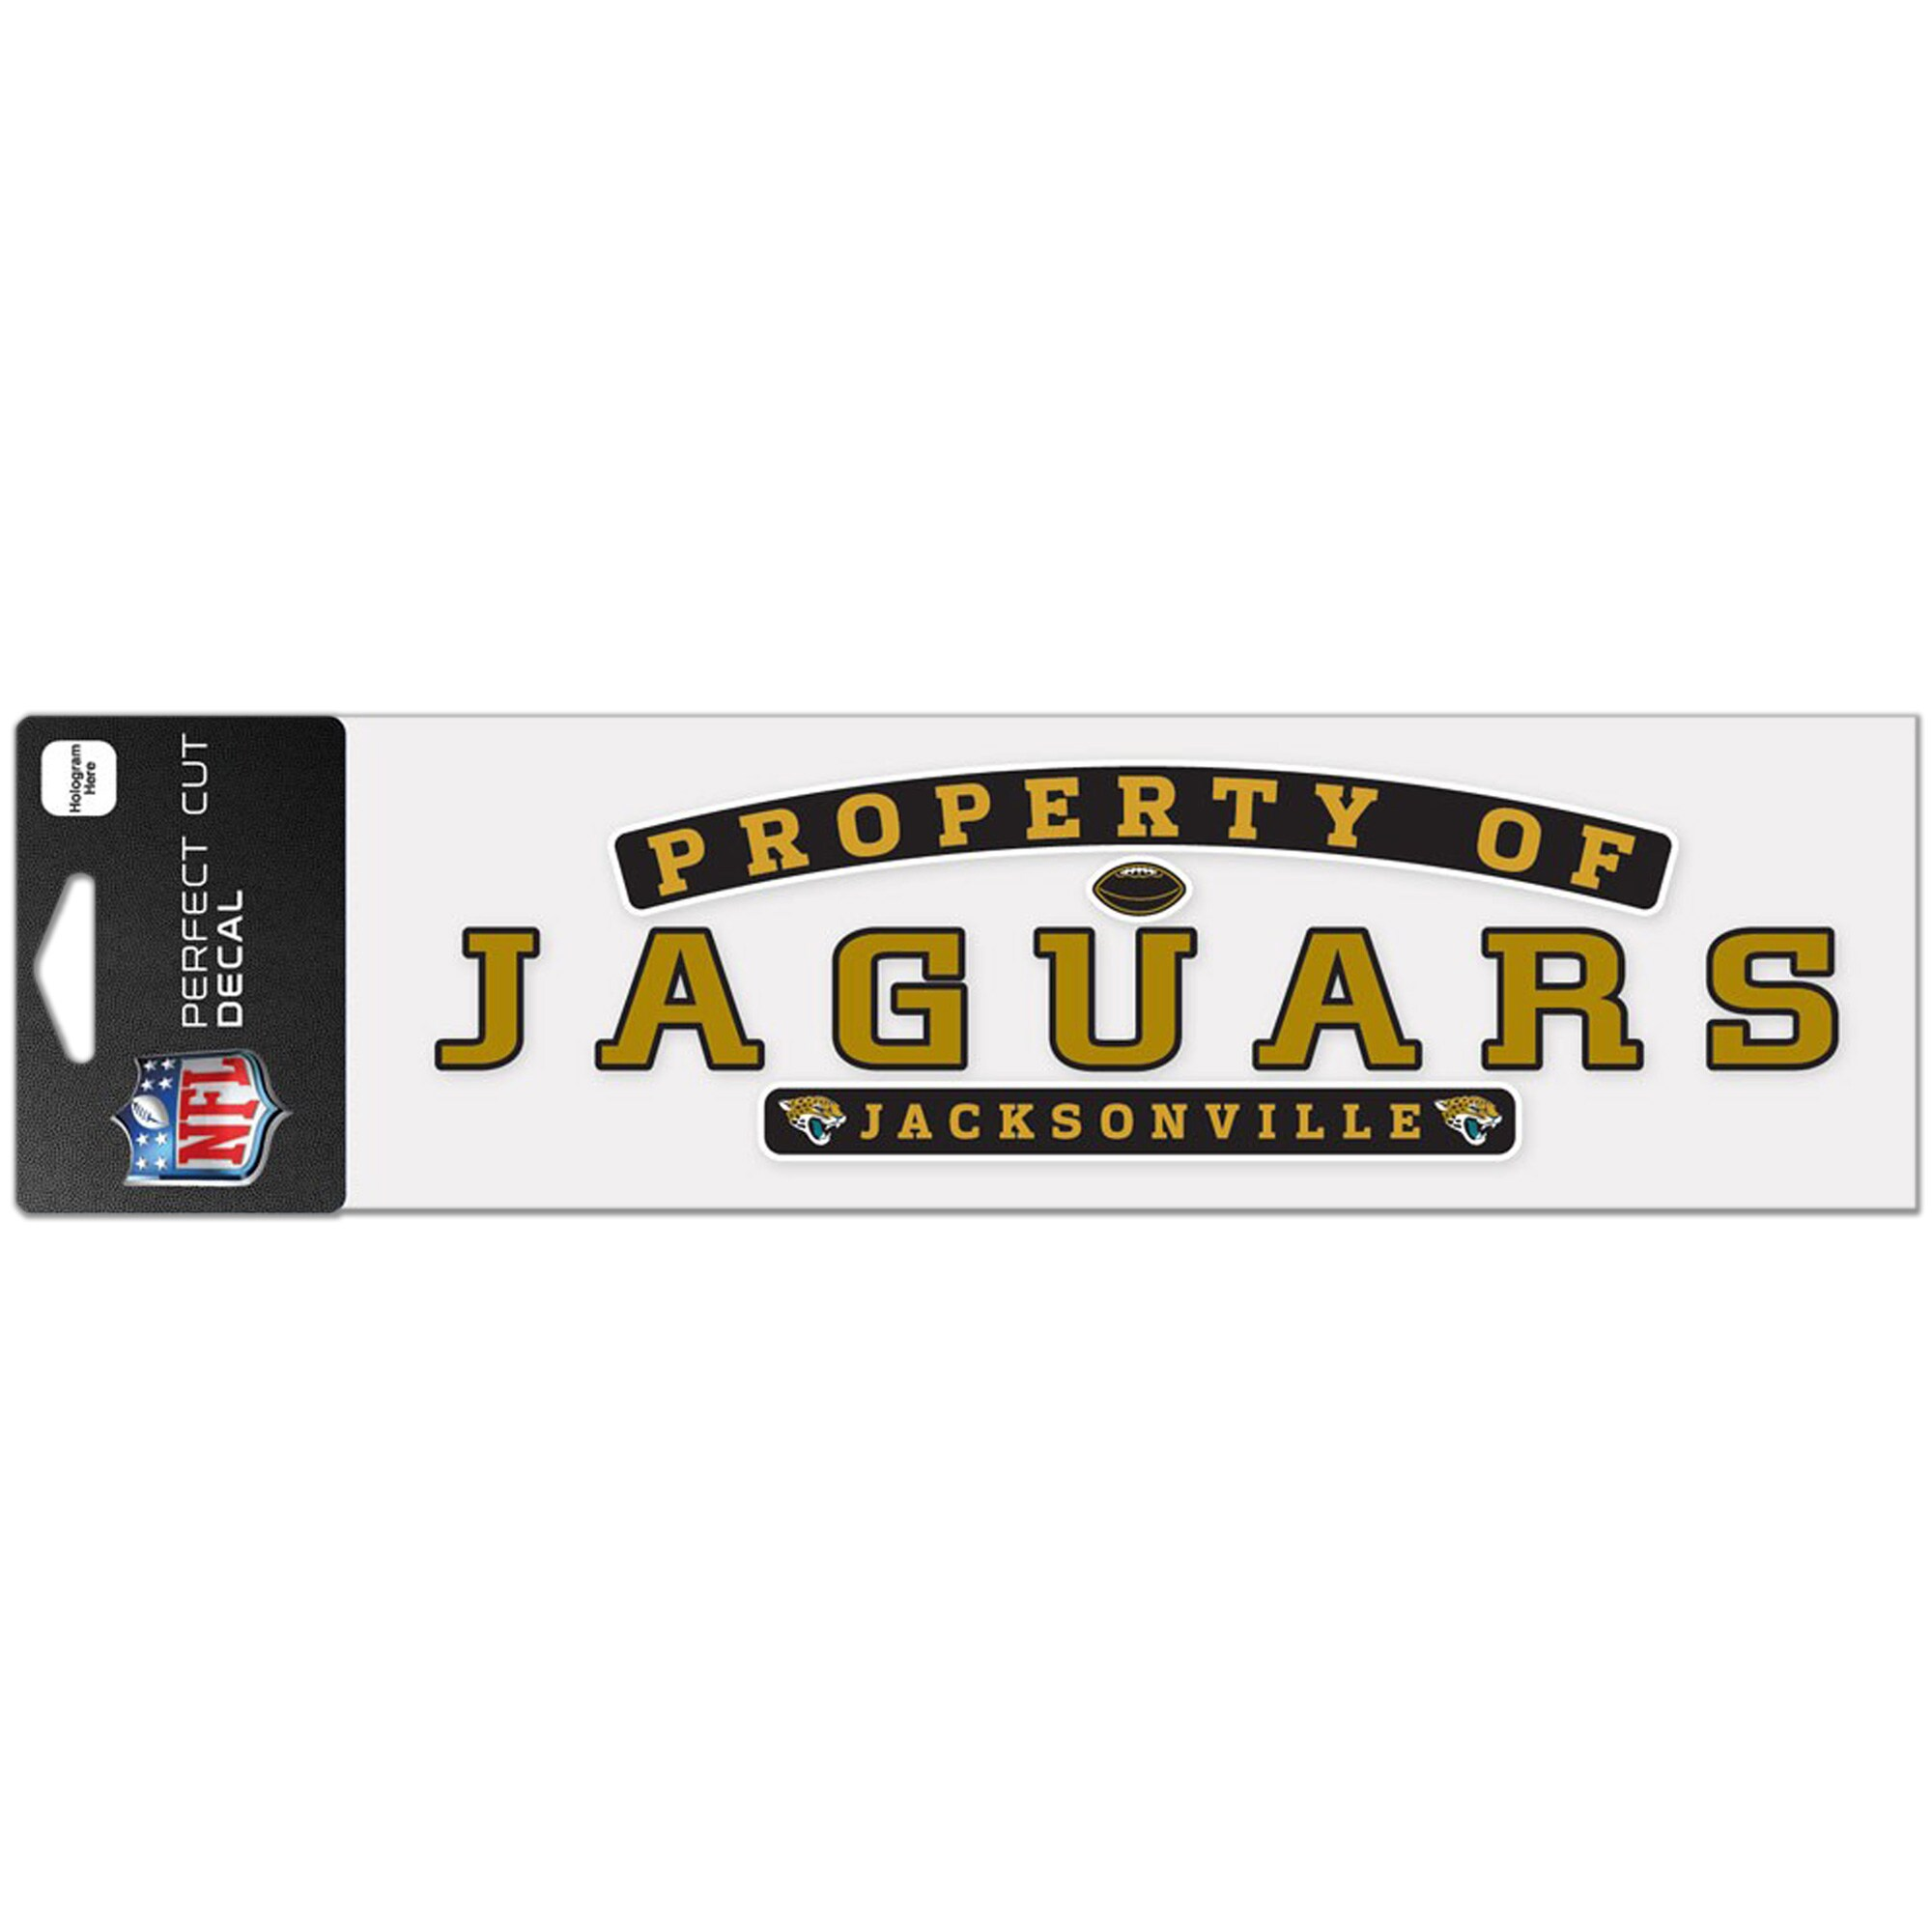 """Jacksonville Jaguars WinCraft 3"""" x 10"""" Property Of Perfect Cut Decal"""